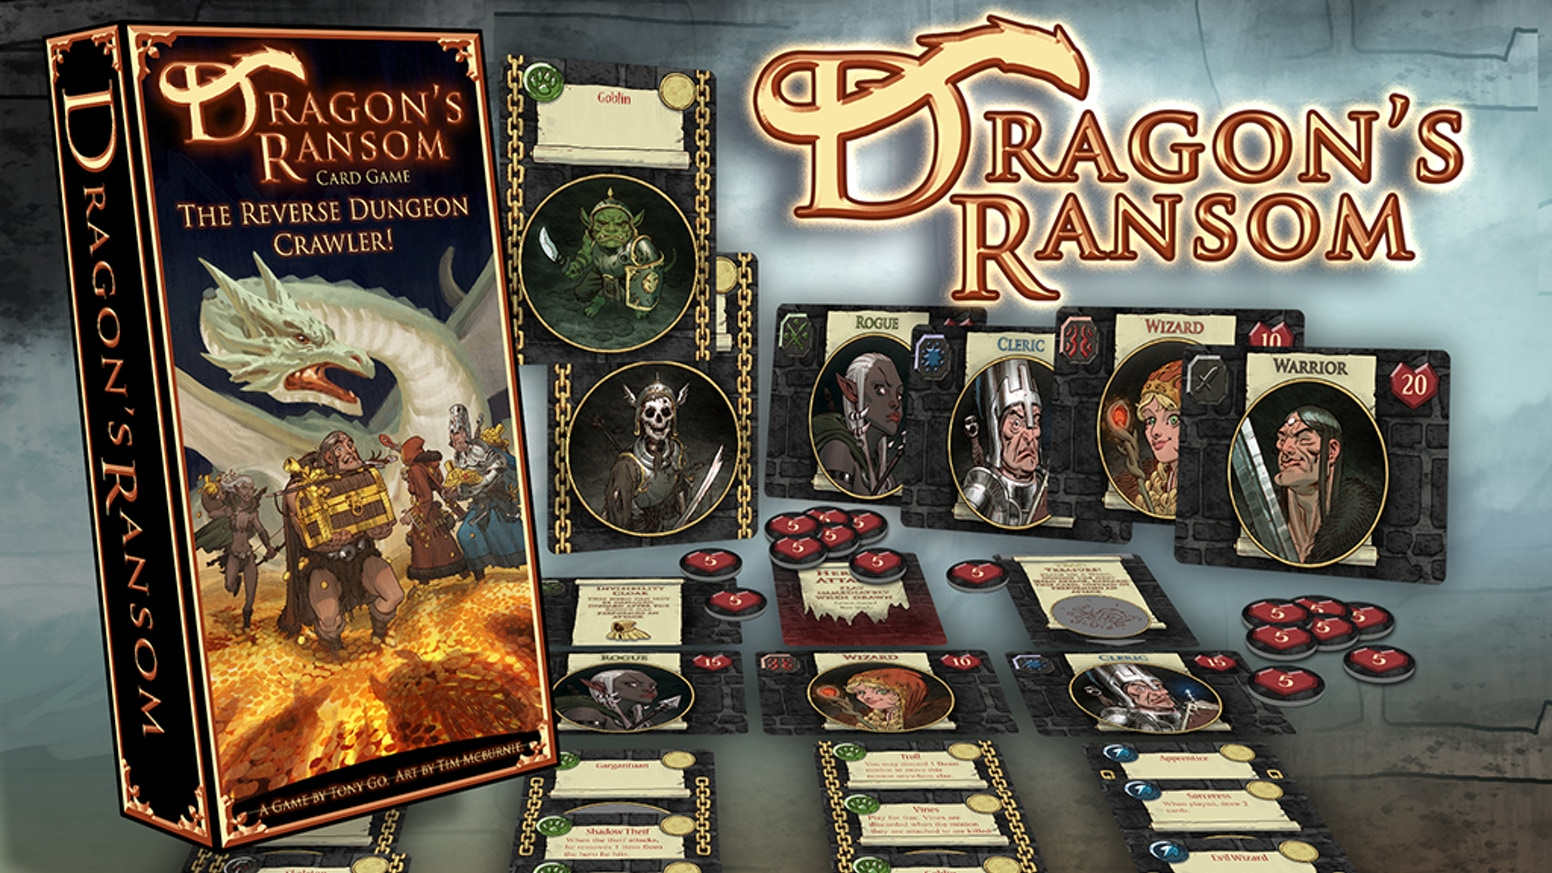 Hark! Heroes have looted the dungeon again! Turn them back in this solo & co-operative fantasy card game for 1 to 4 players.